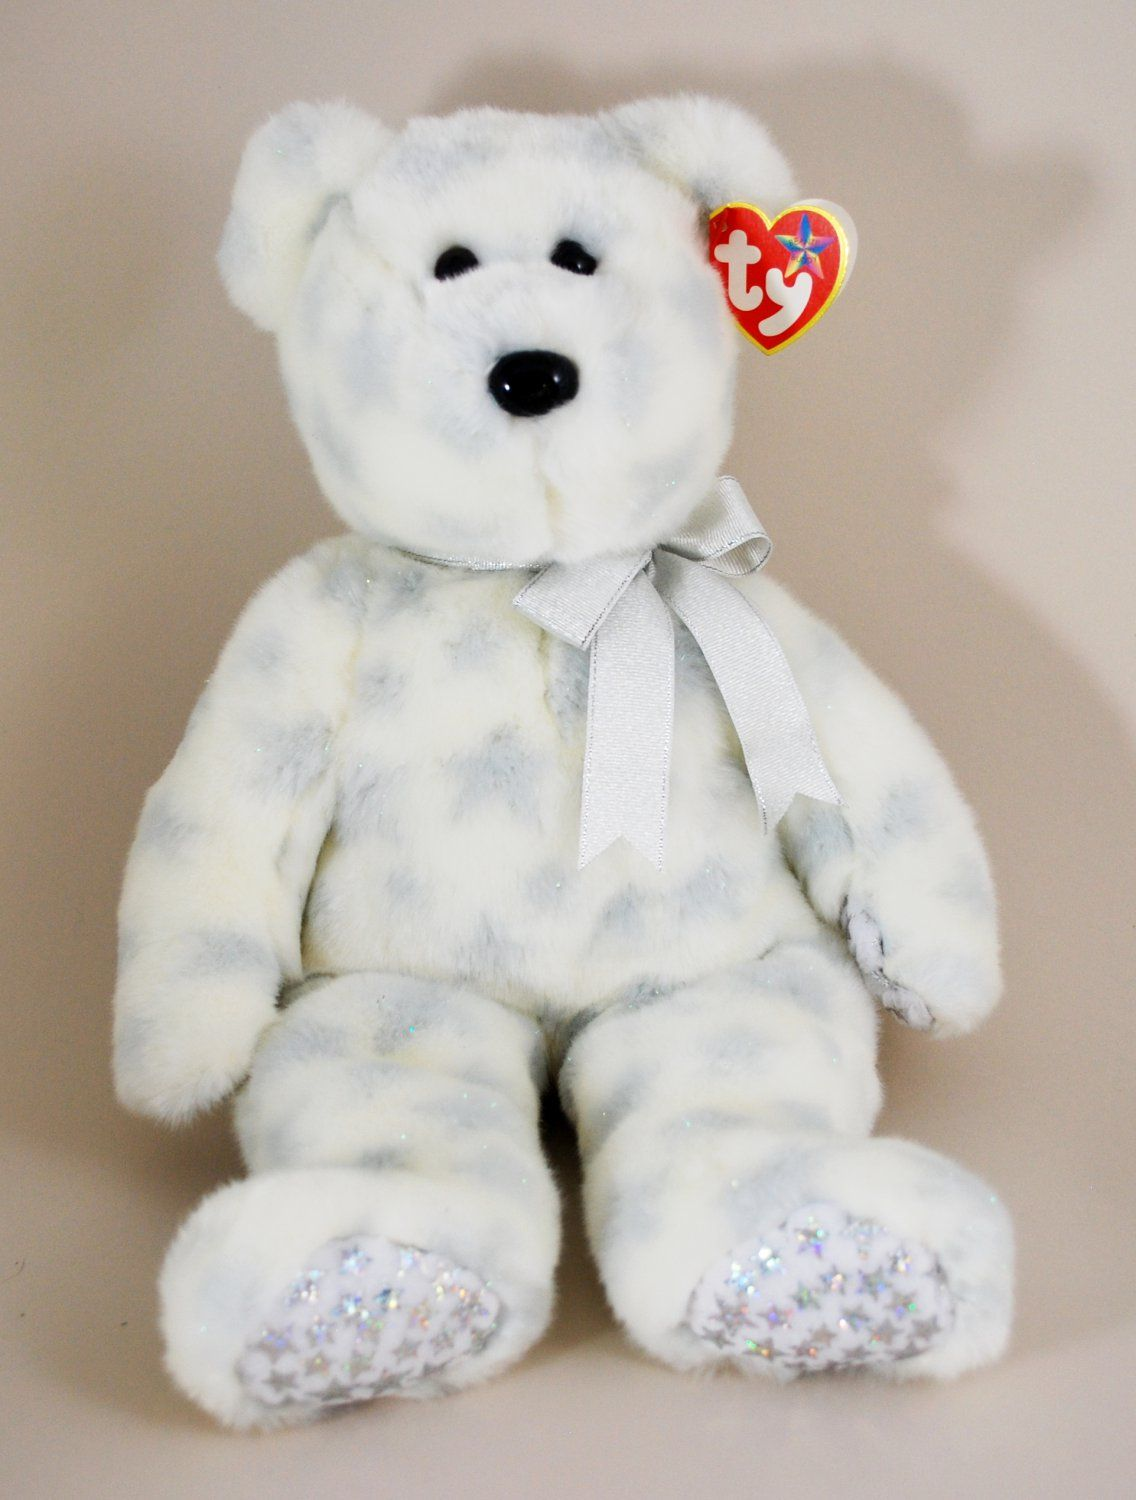 Ty The Beginning bear beanie buddy is a white and silver plush bear with  silver stars on his paw and feet pads. He has a silver ribbon around his  neck. d2bb90067aca